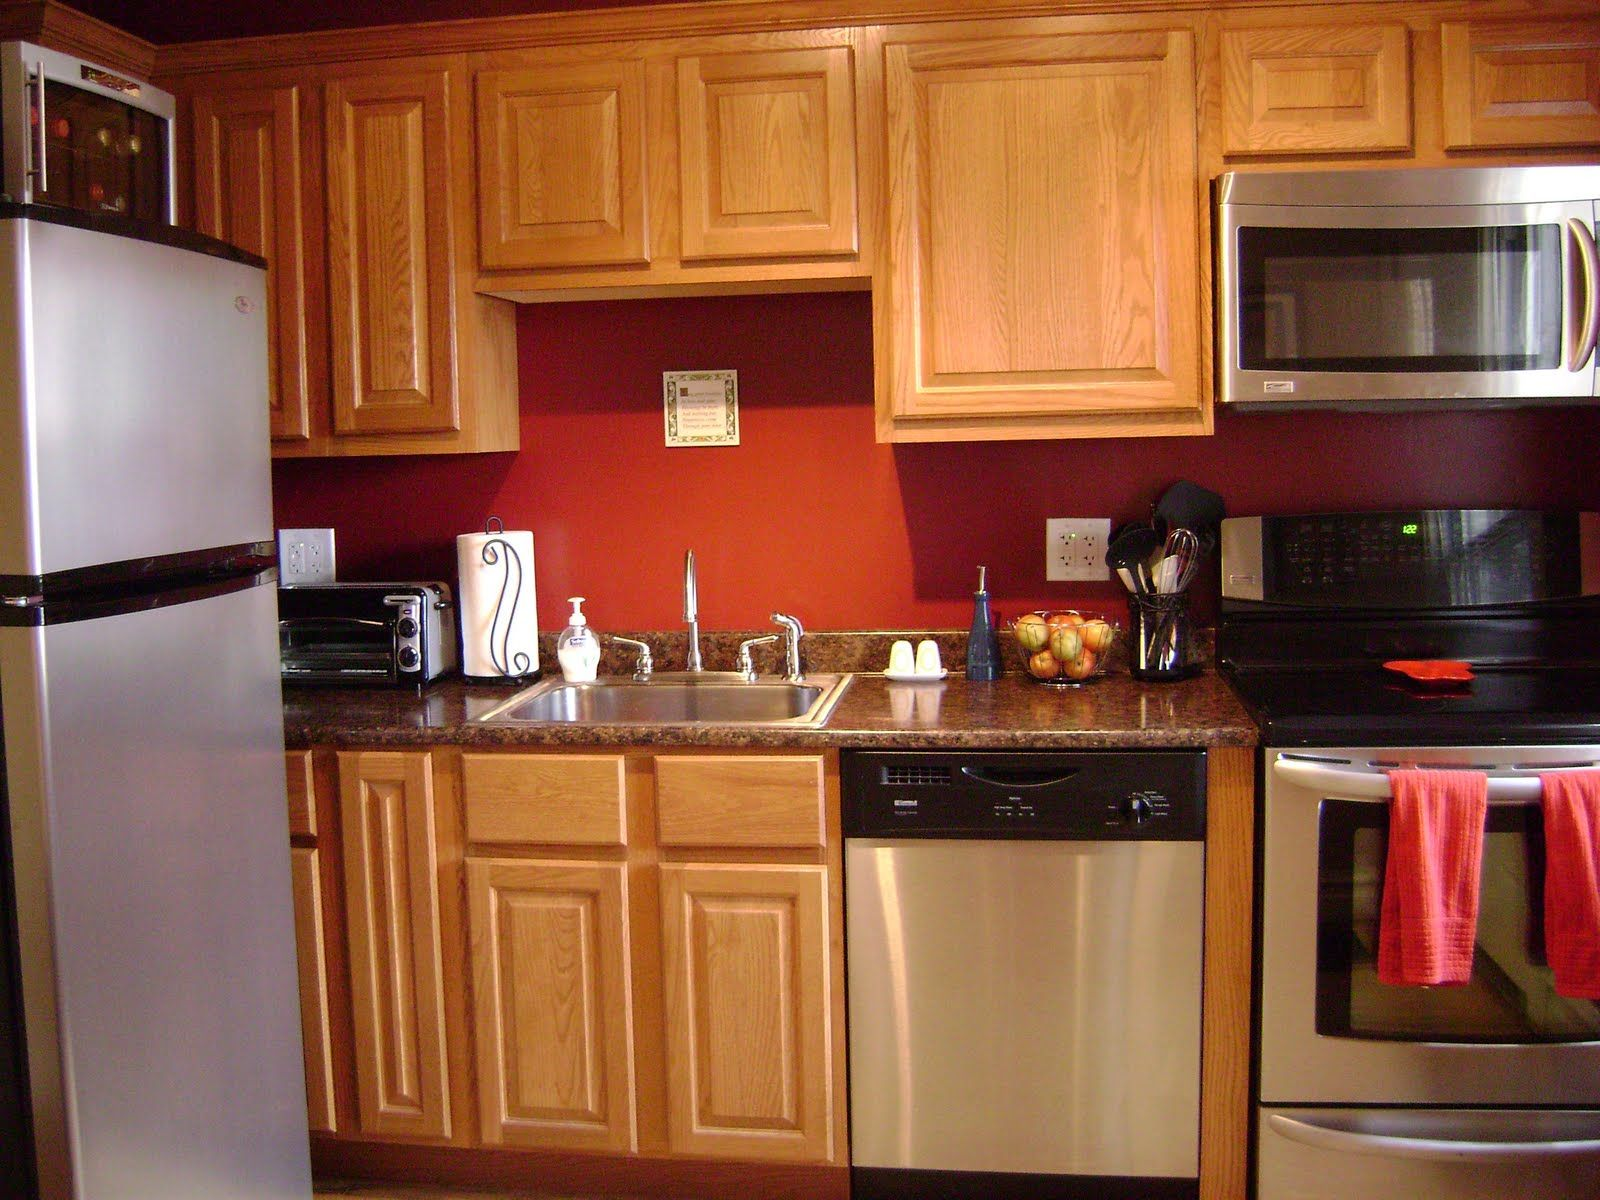 kitchen wall color ideas with oak cabinets design idea kitchen pinterest on kitchen cabinet color ideas id=39615